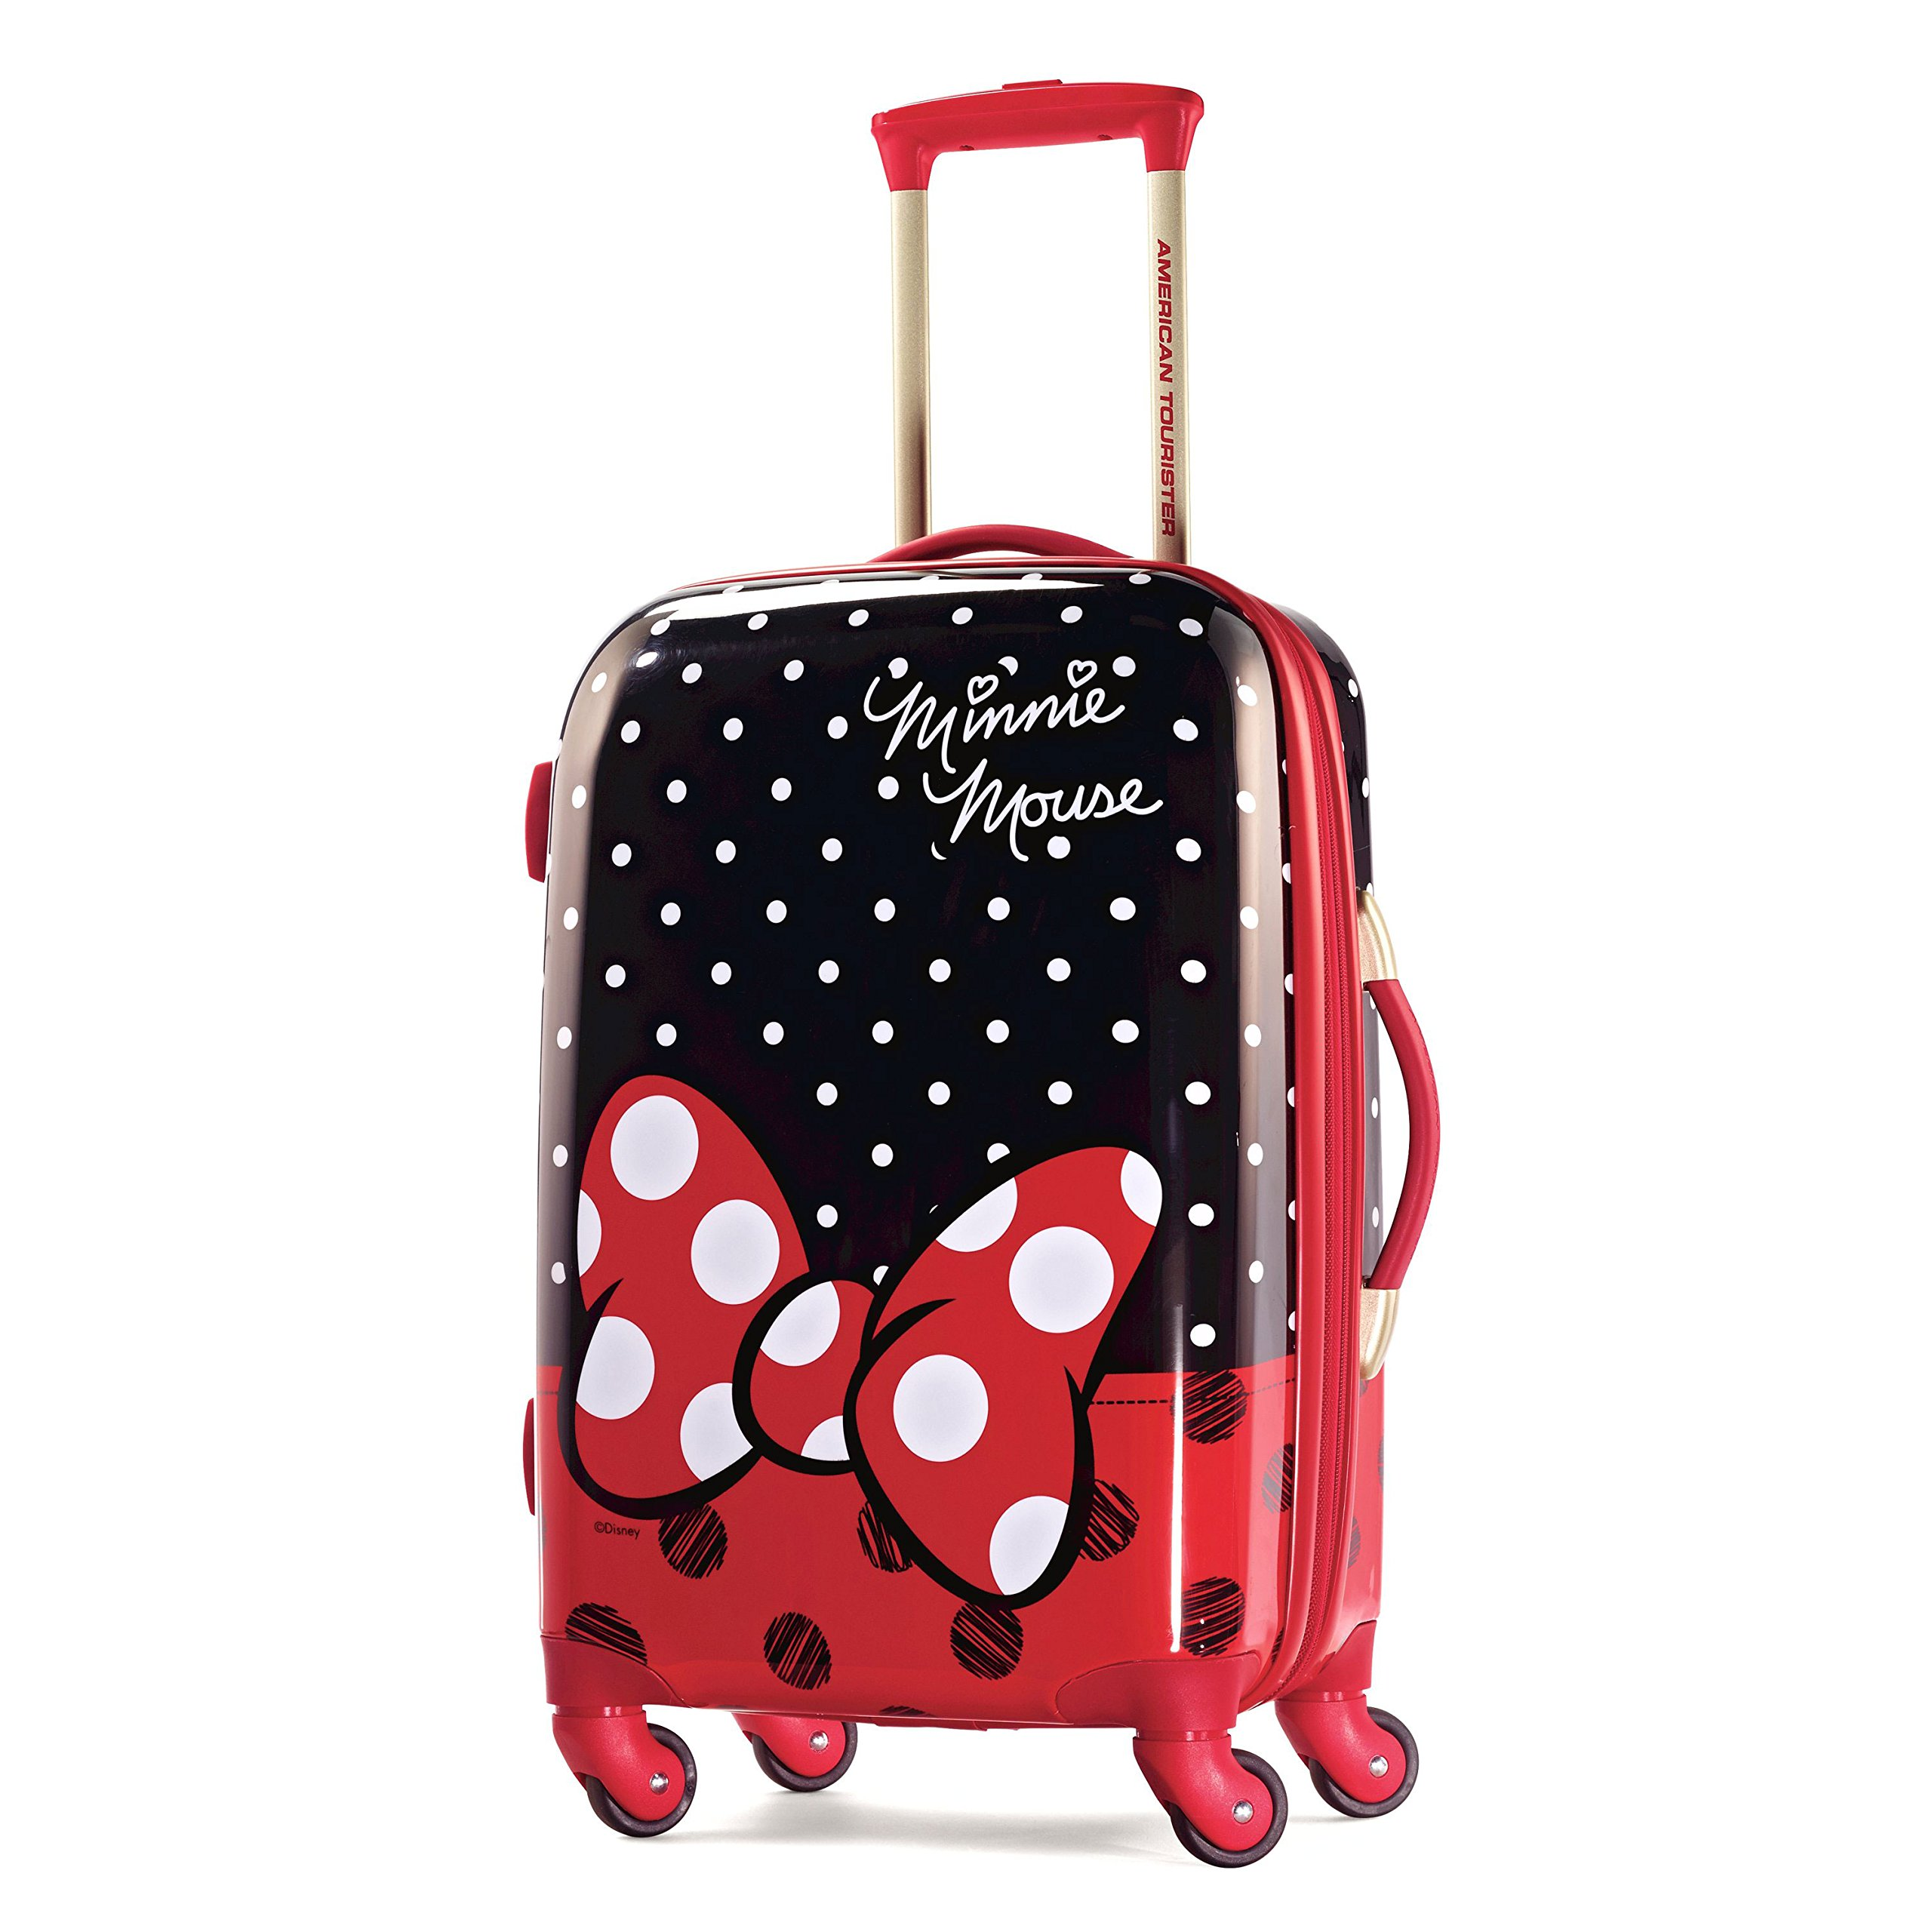 American Tourister 21 Inch, Minnie Mouse Red Bow